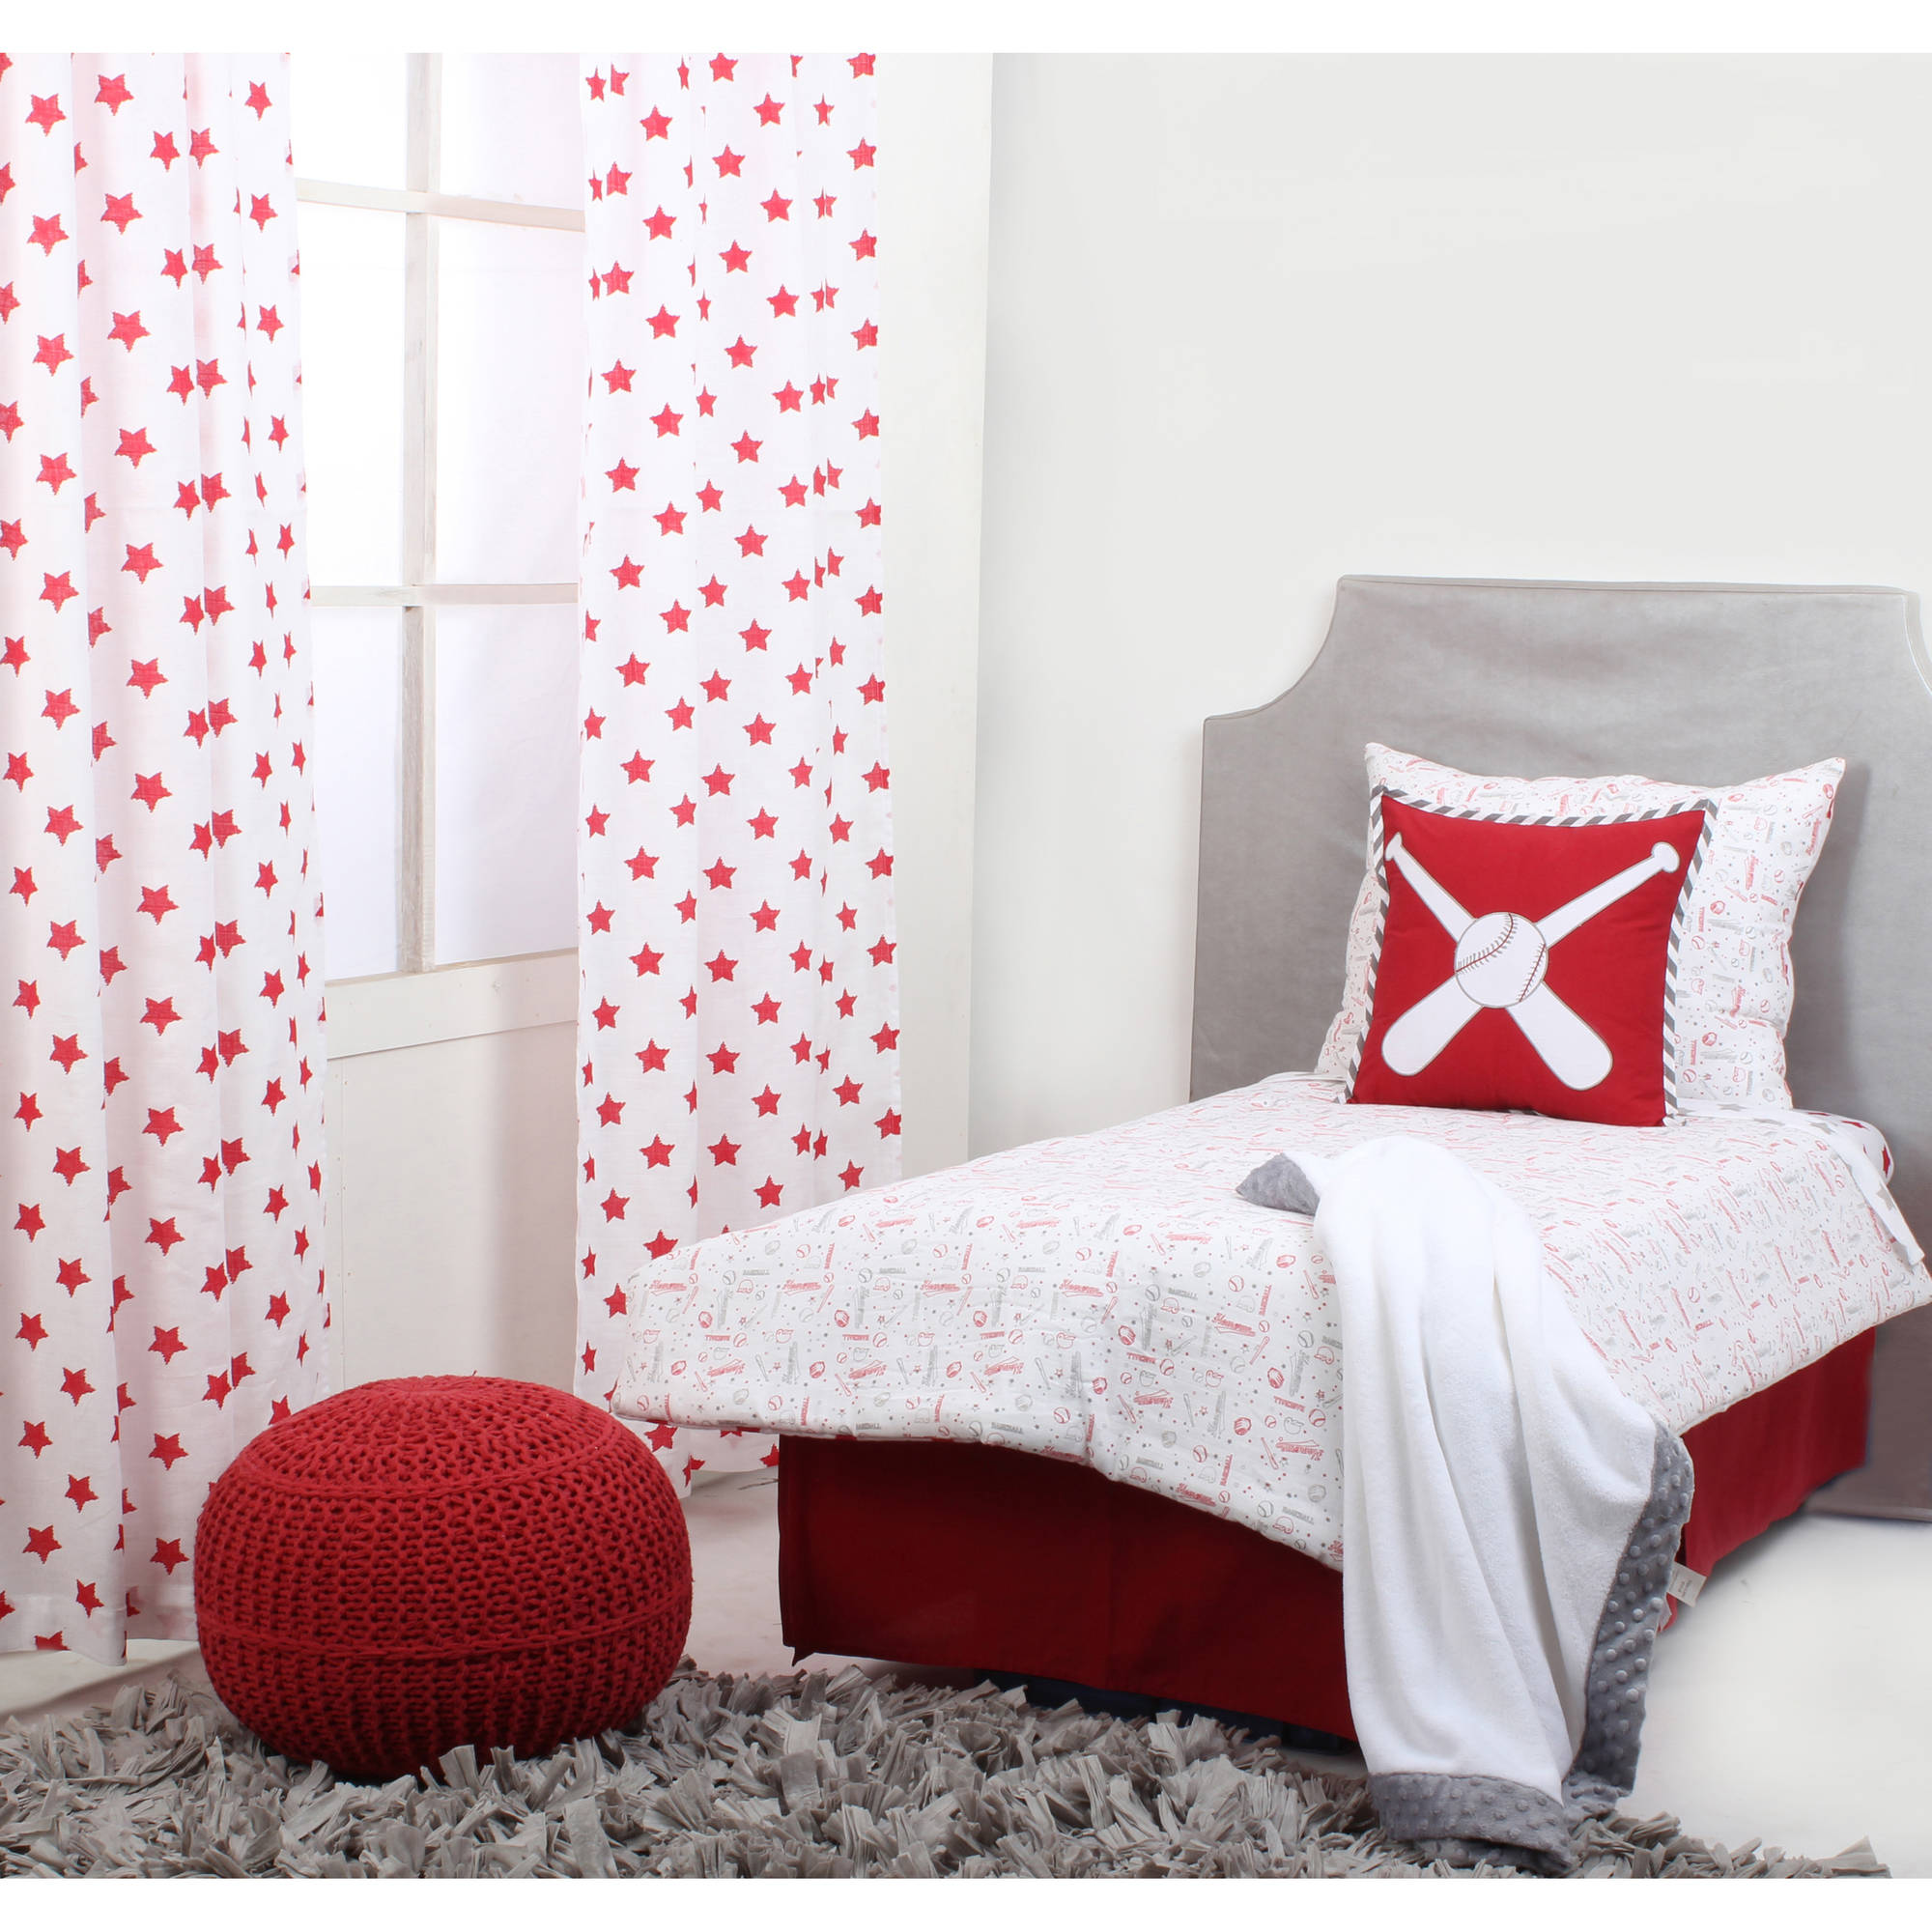 Bacati - Sports 100% Cotton Muslin 4-Piece Toddler Bedding Set, Baseball Red/Grey